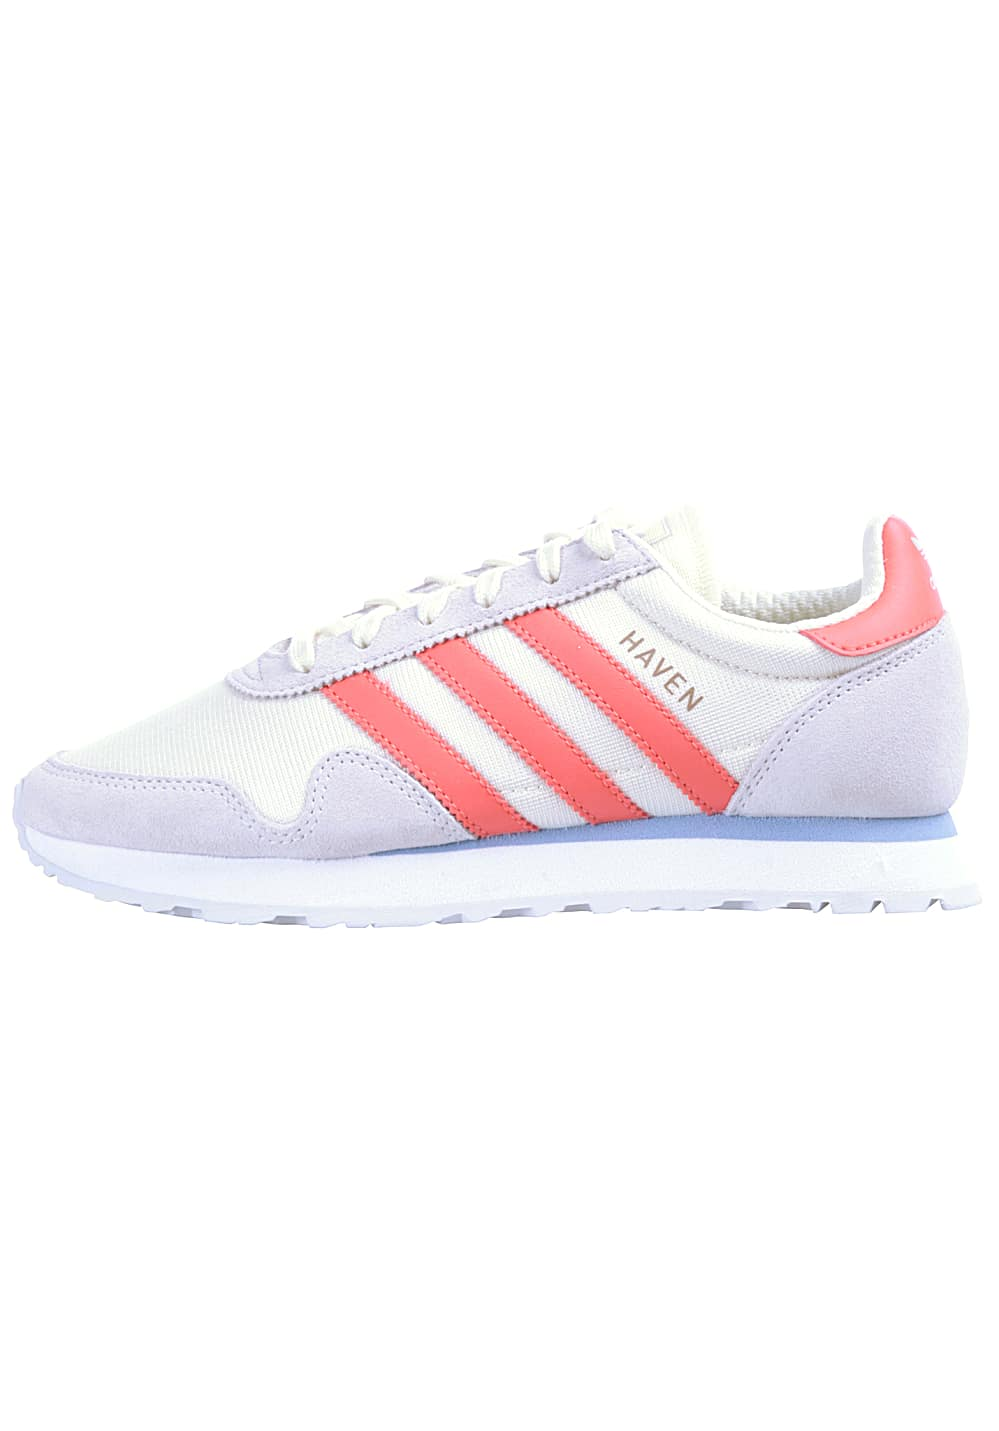 ADIDAS ORIGINALS Haven Sneakers for Women Beige